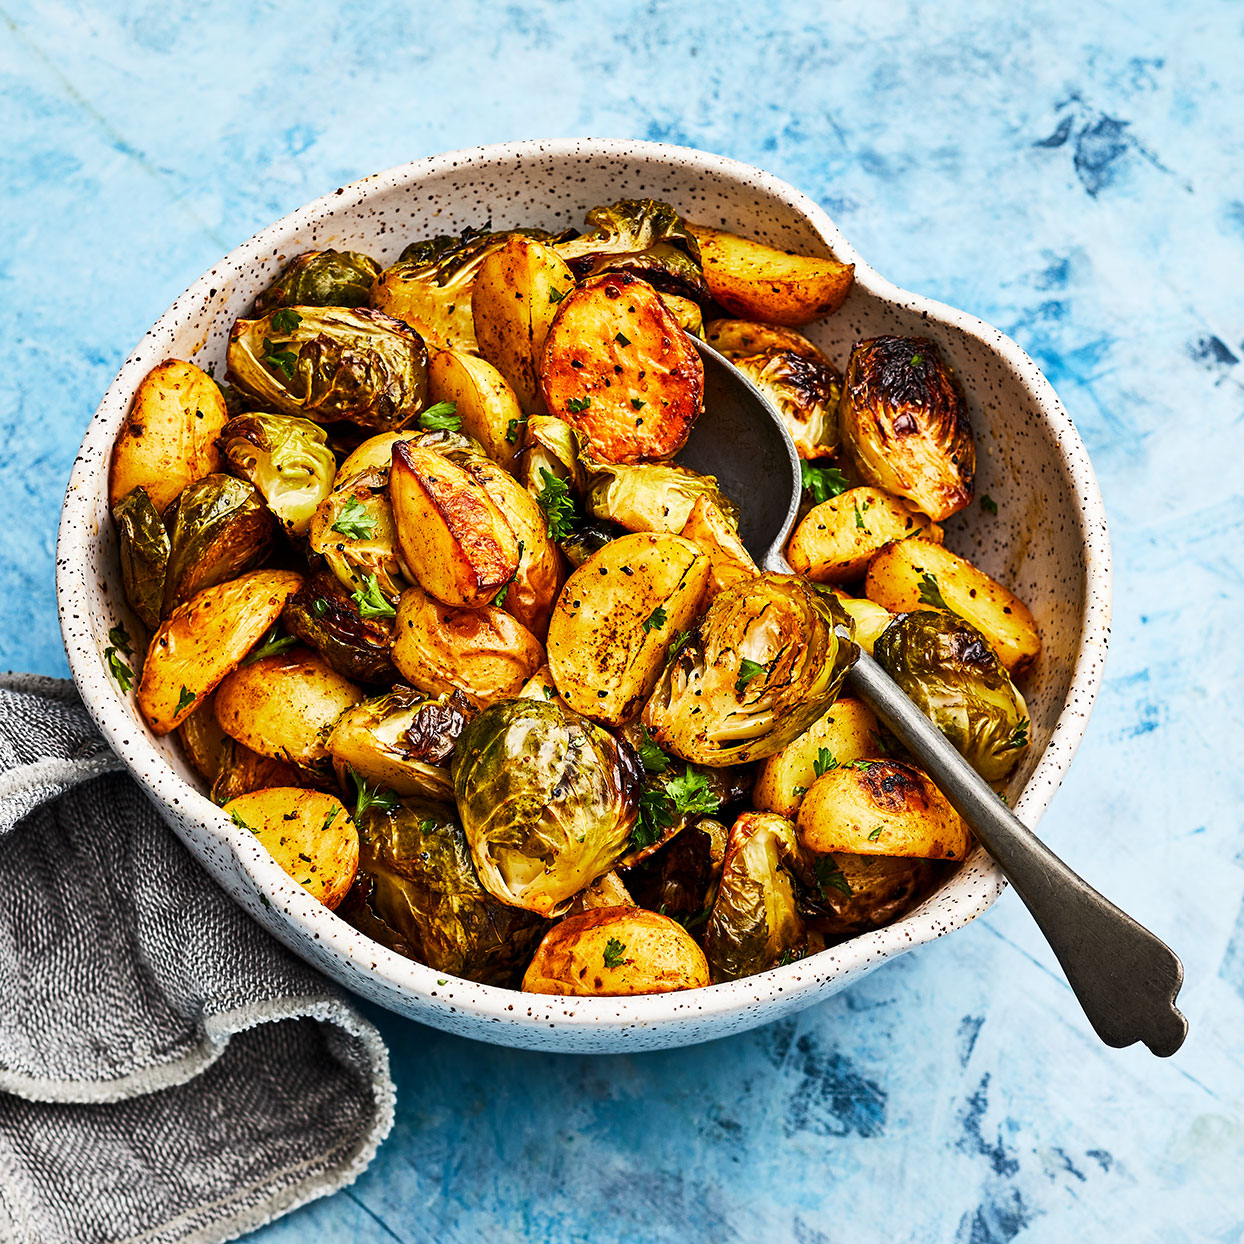 Roasted Potatoes & Brussels Sprouts